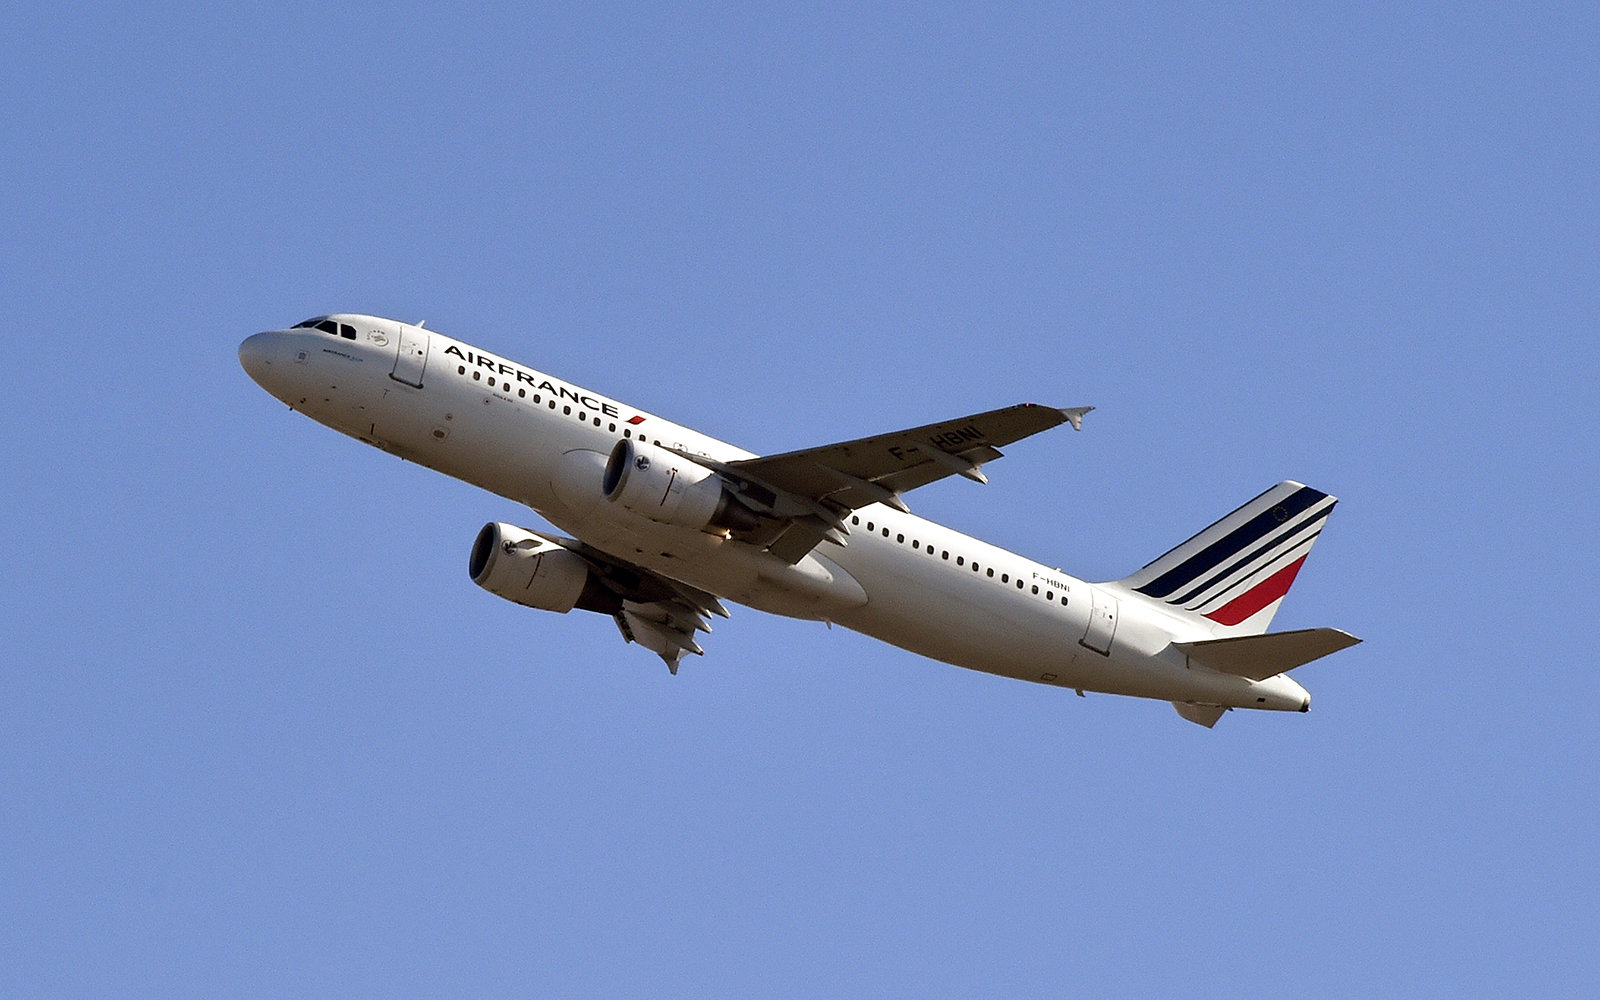 Drone almost hits Air France Plane